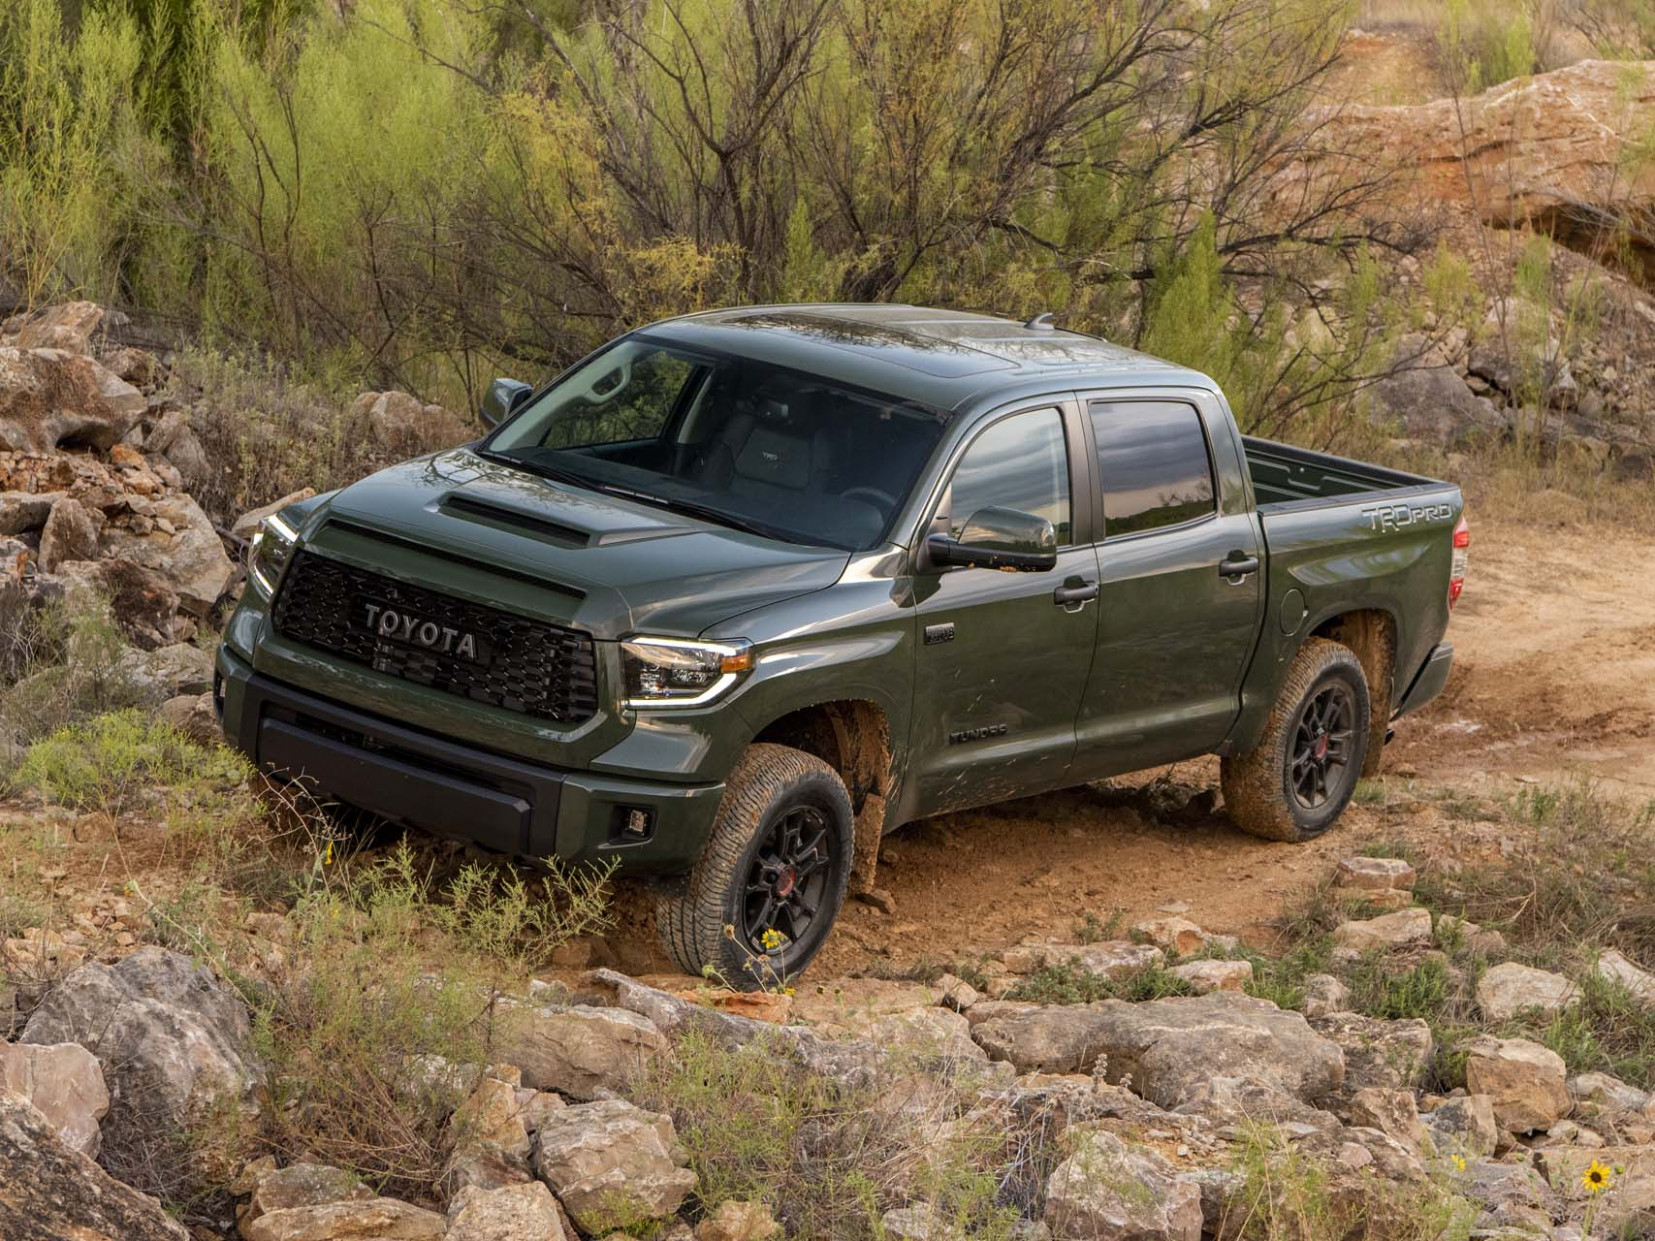 10 Toyota Tundra Review, Ratings, Specs, Prices, and Photos ..